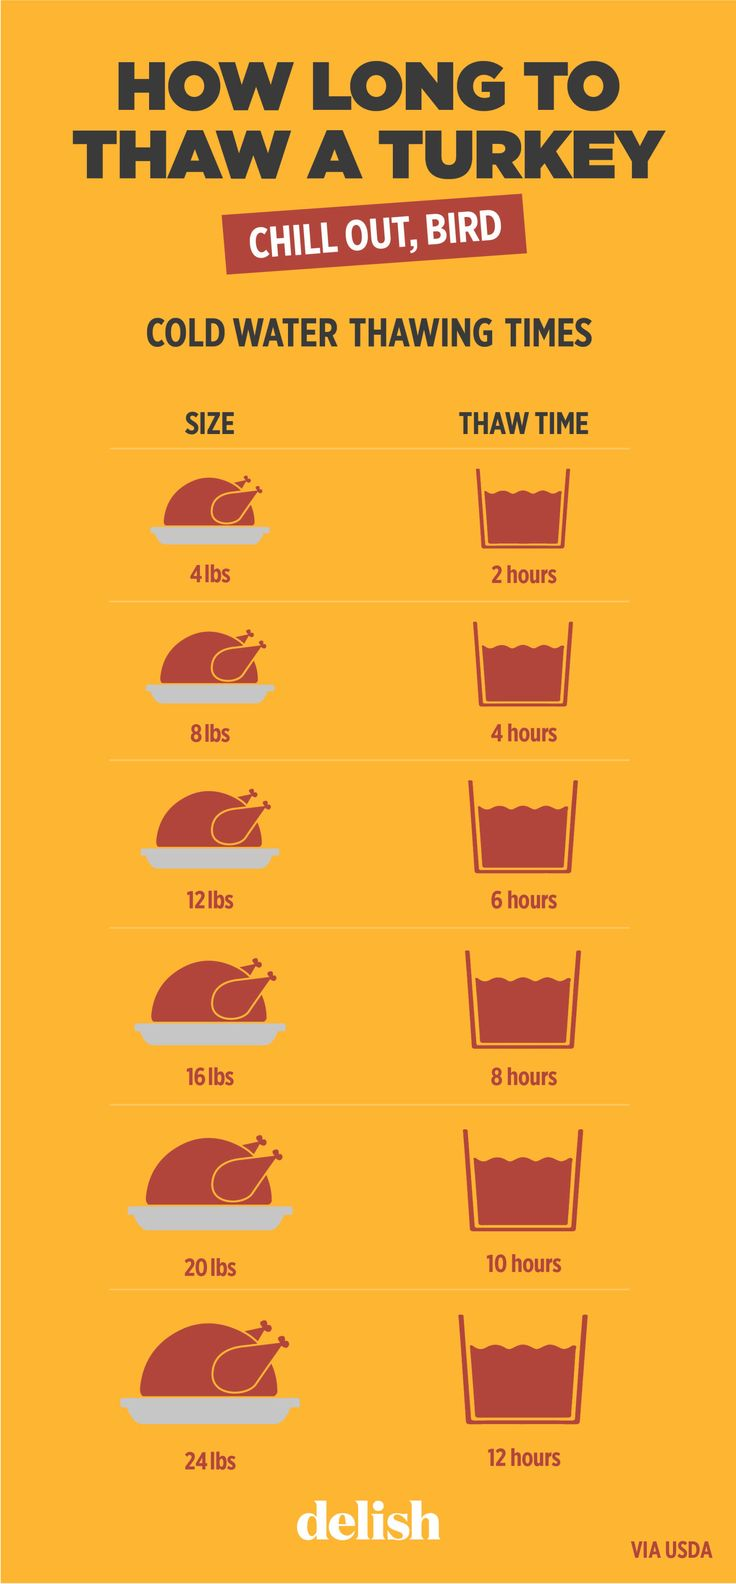 How Long Will It Take To Thaw Your Turkey? A turkey defrosted by the cold water method should be cooked immediately after it is thawed. But the sooner the better, right? We're already hungry.